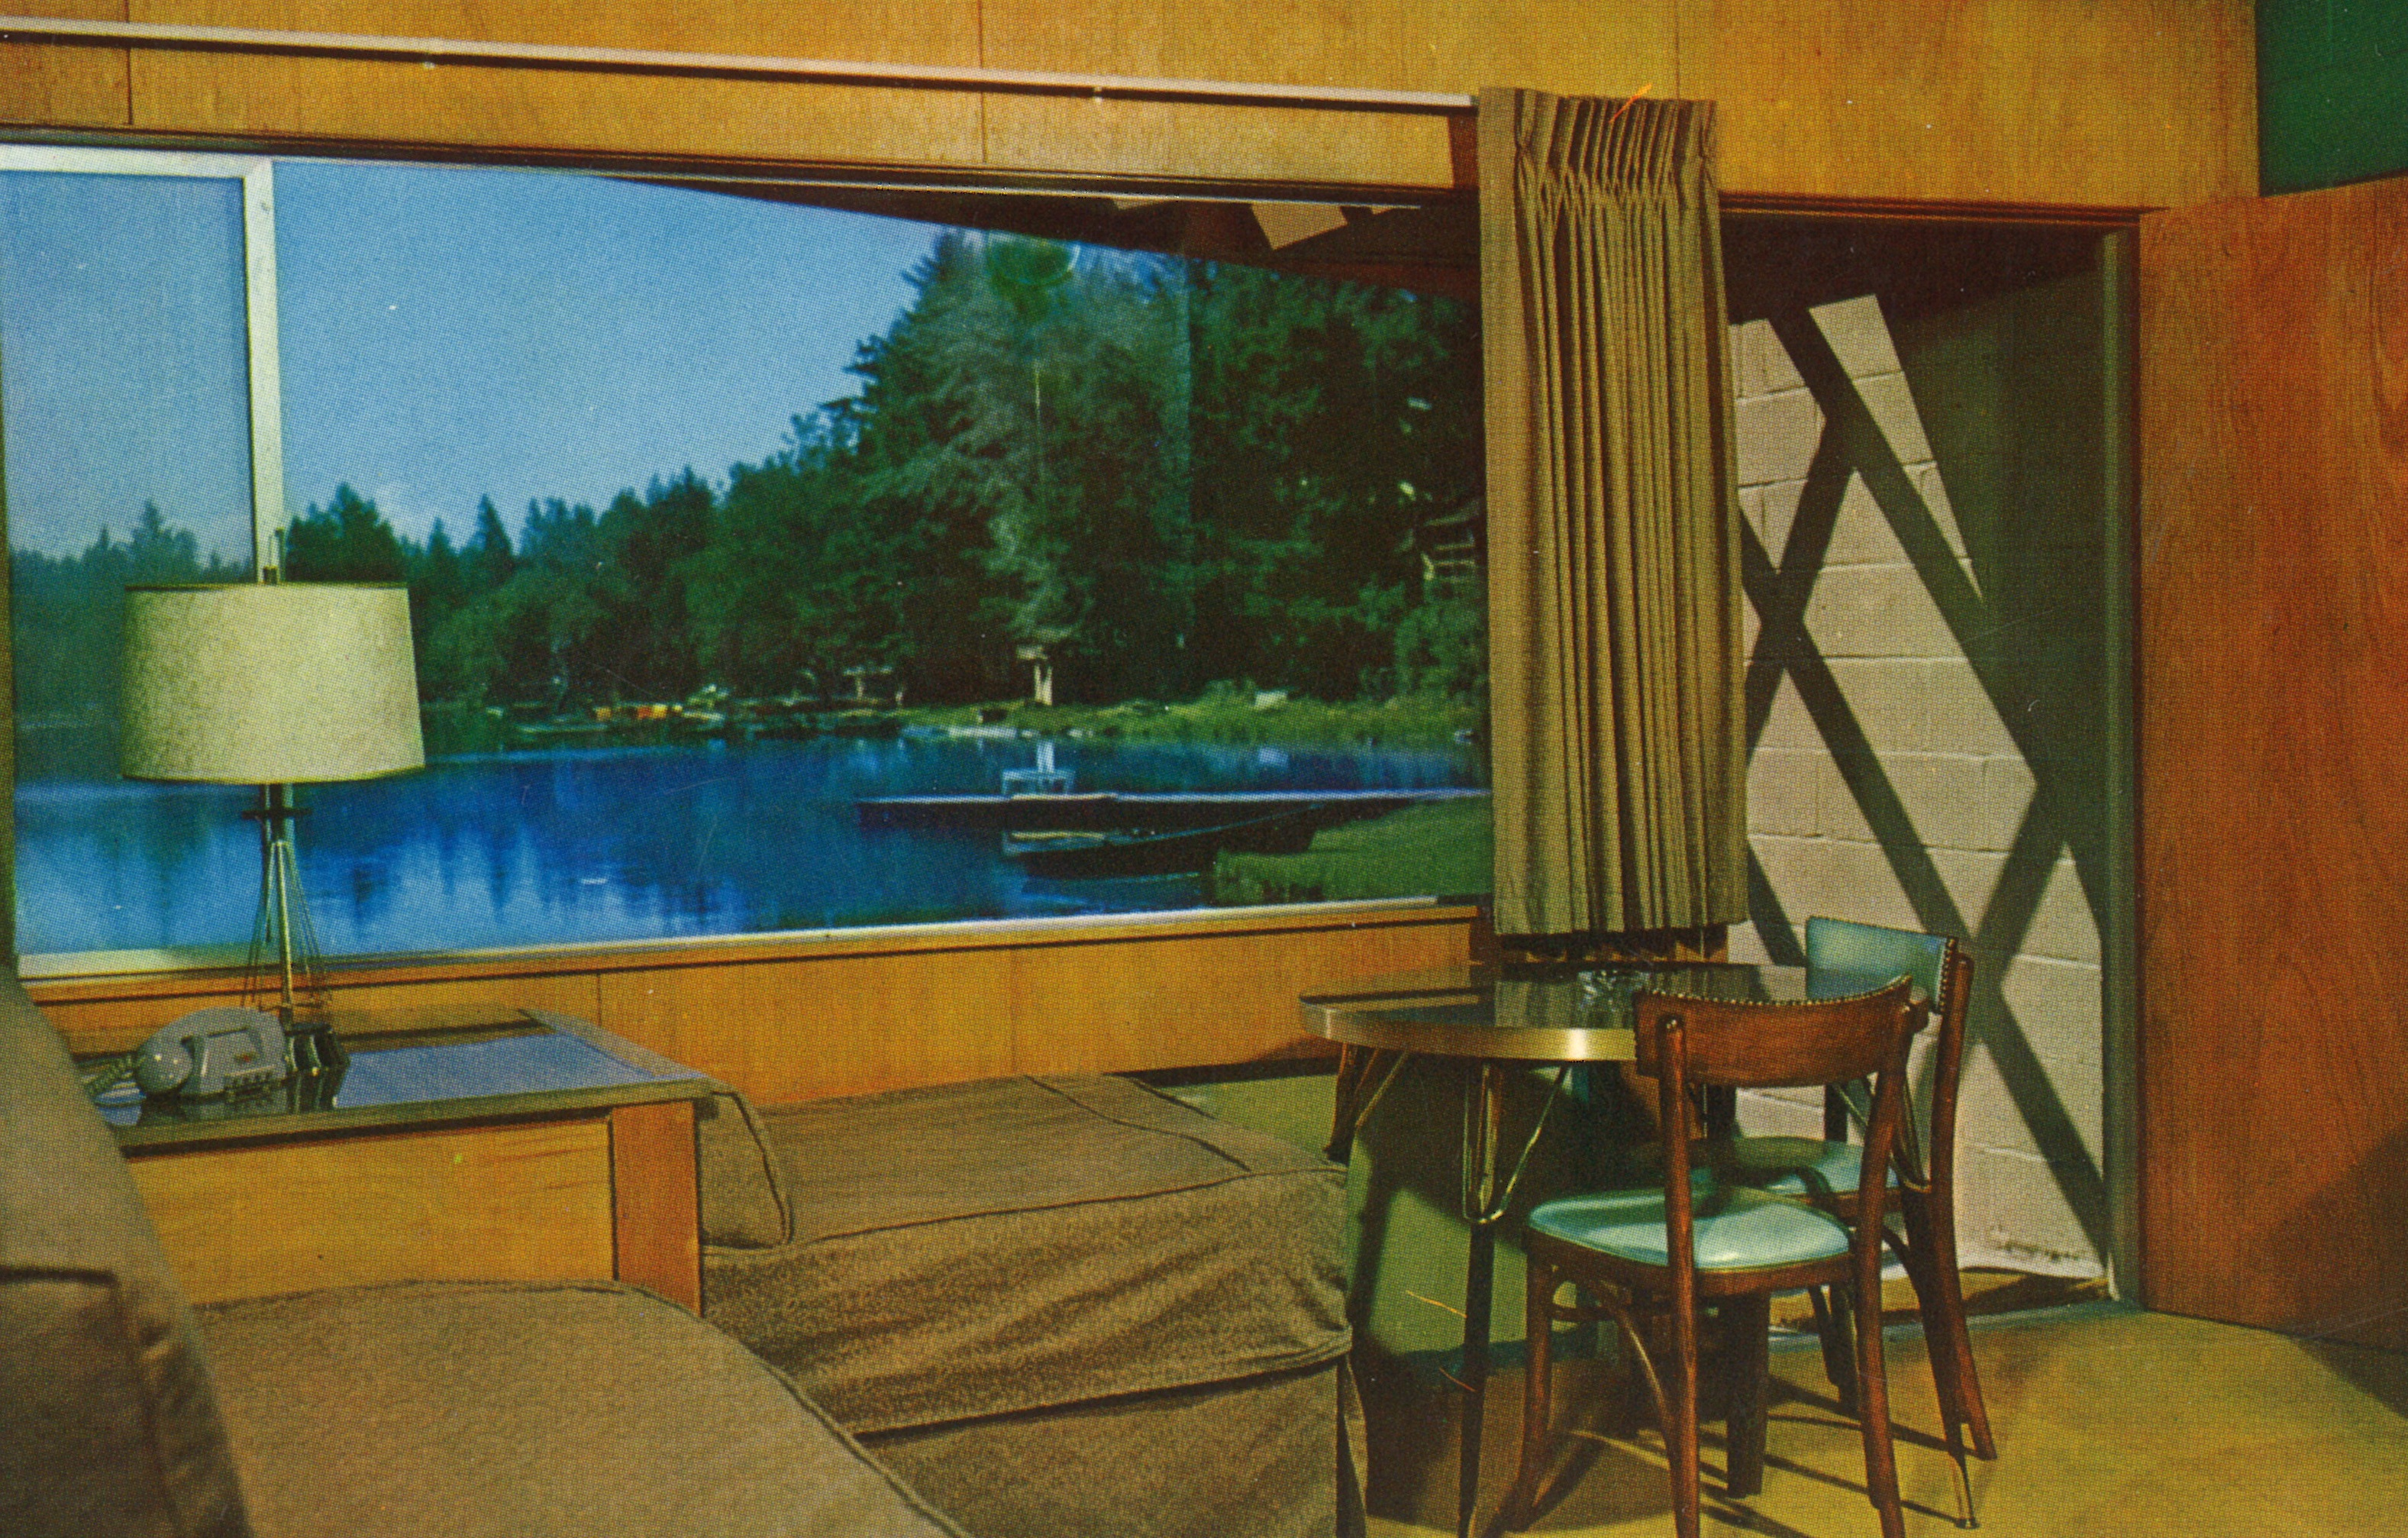 472_1_12_gaffneys_resort_cabin_postcard